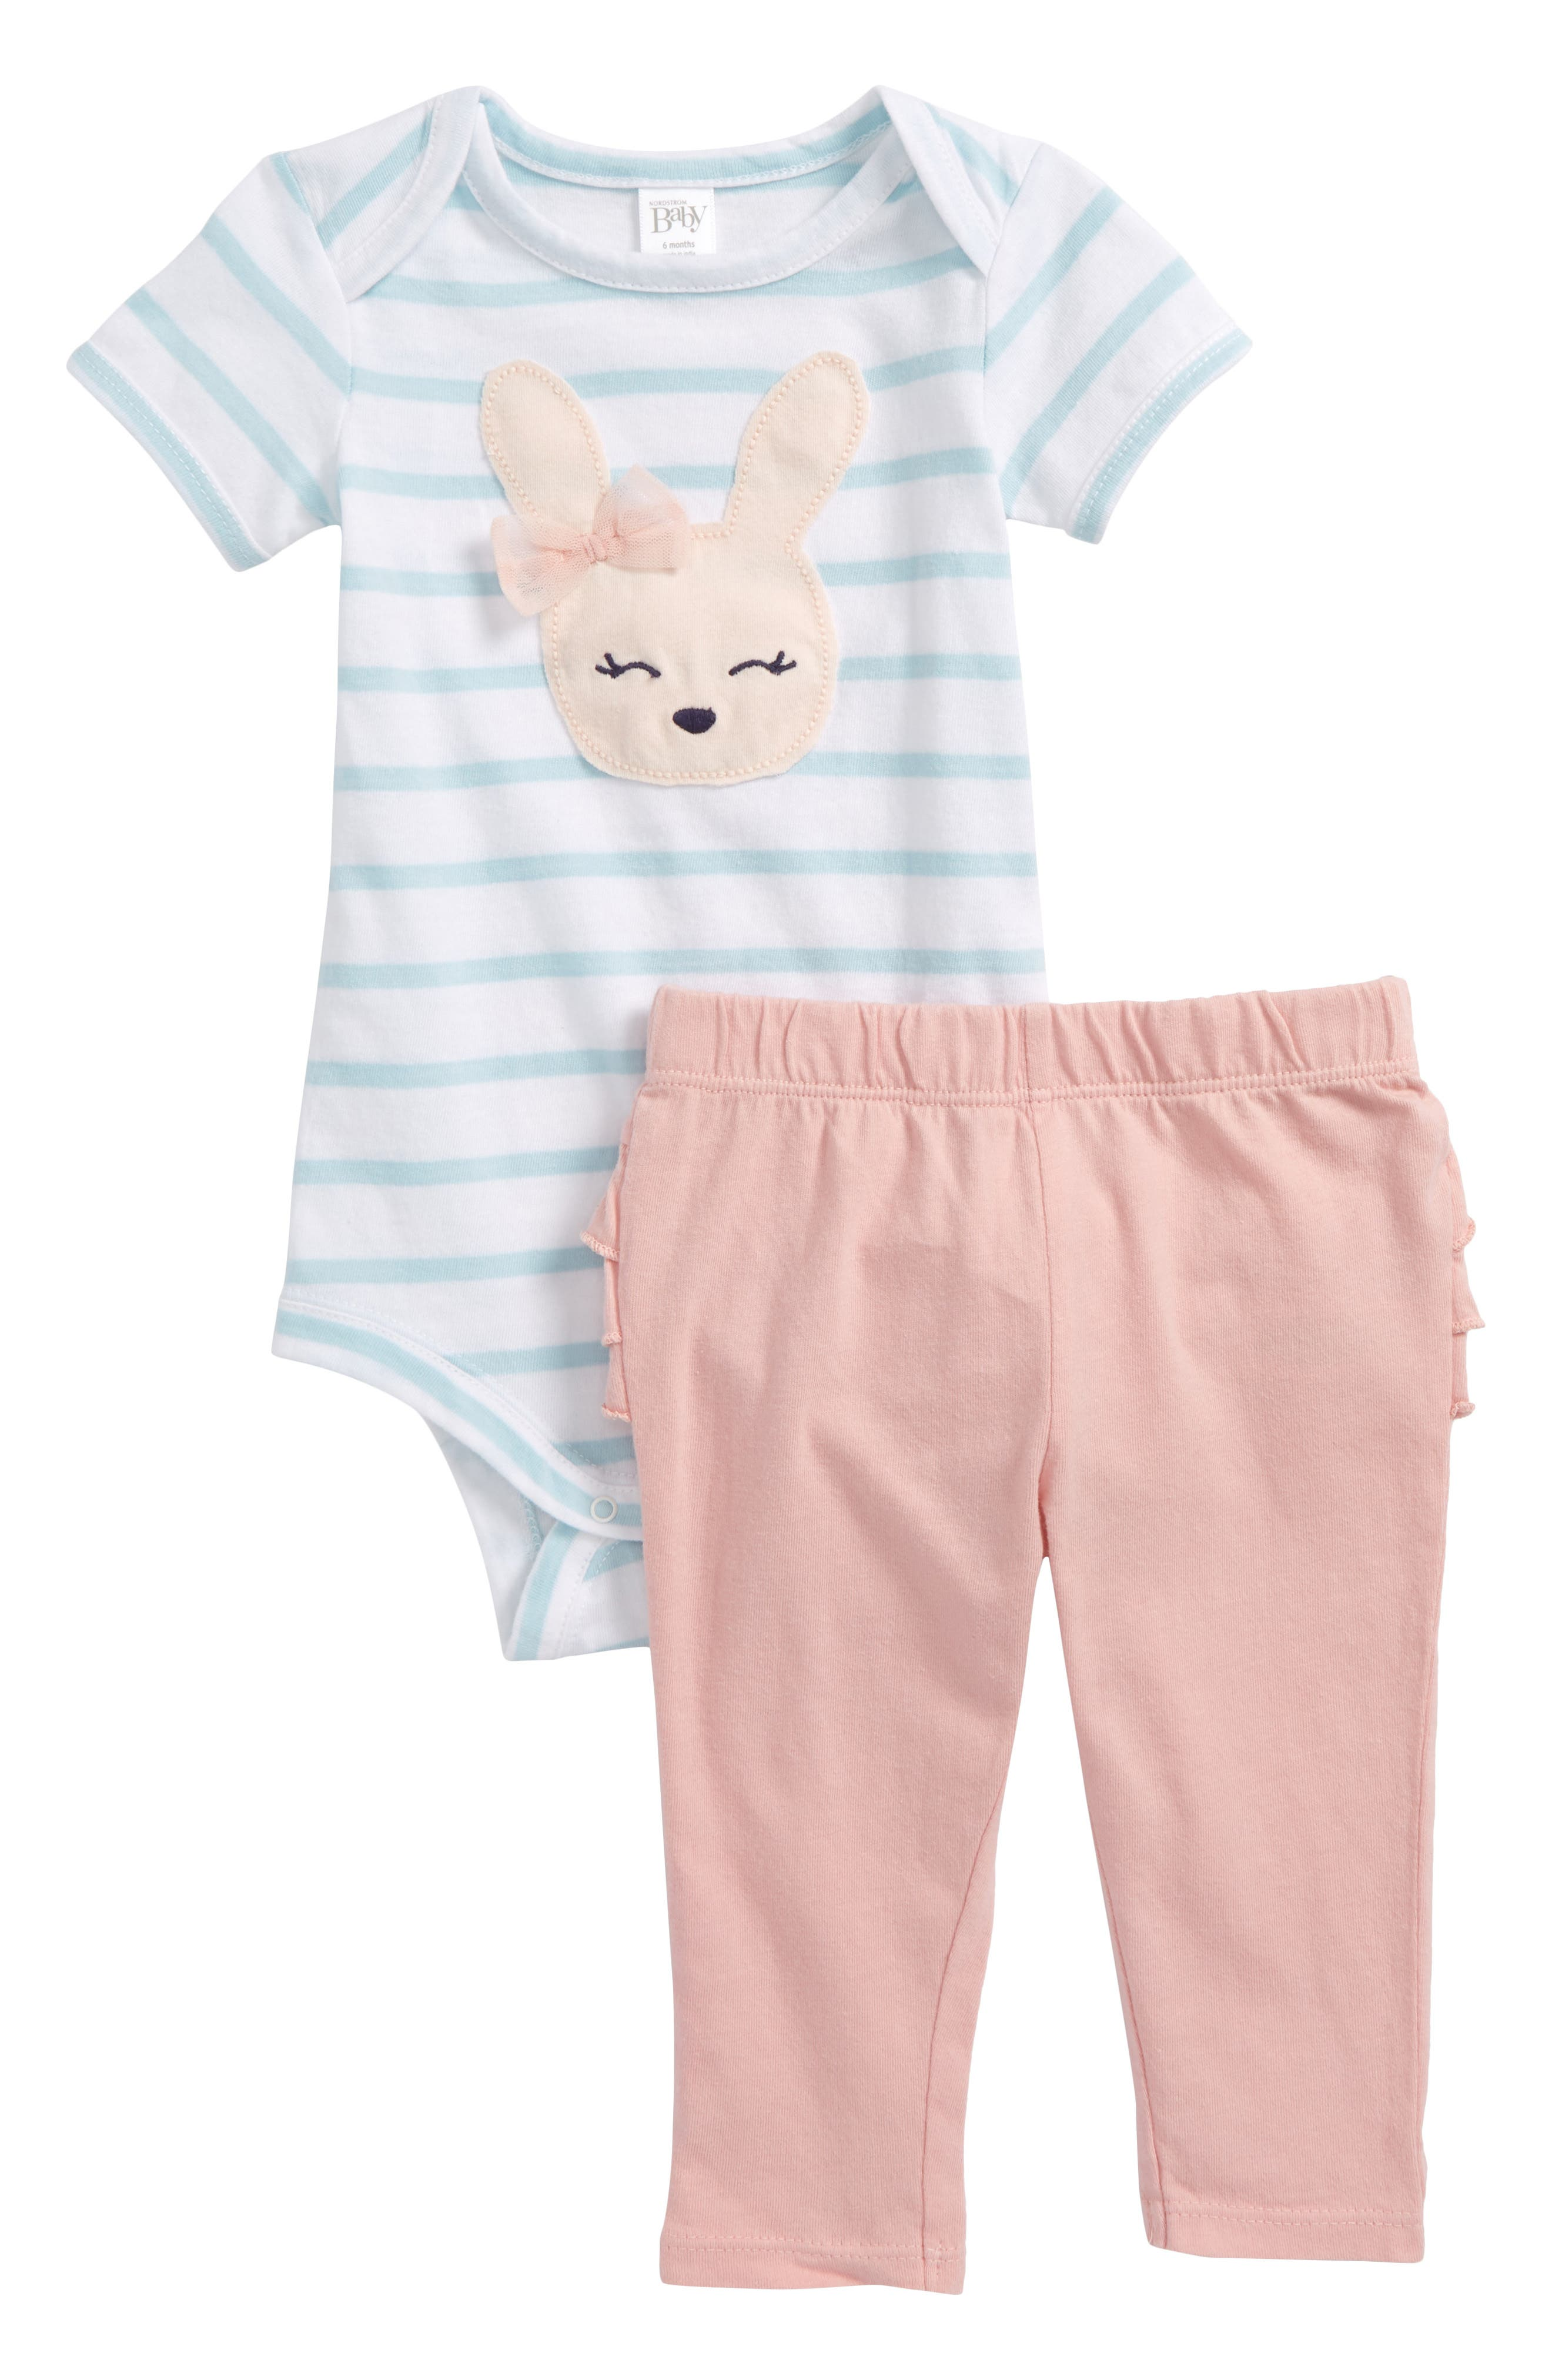 Nordstrom Baby Stripe Bodysuit & Ruffle Leggings Set (Baby Girls)